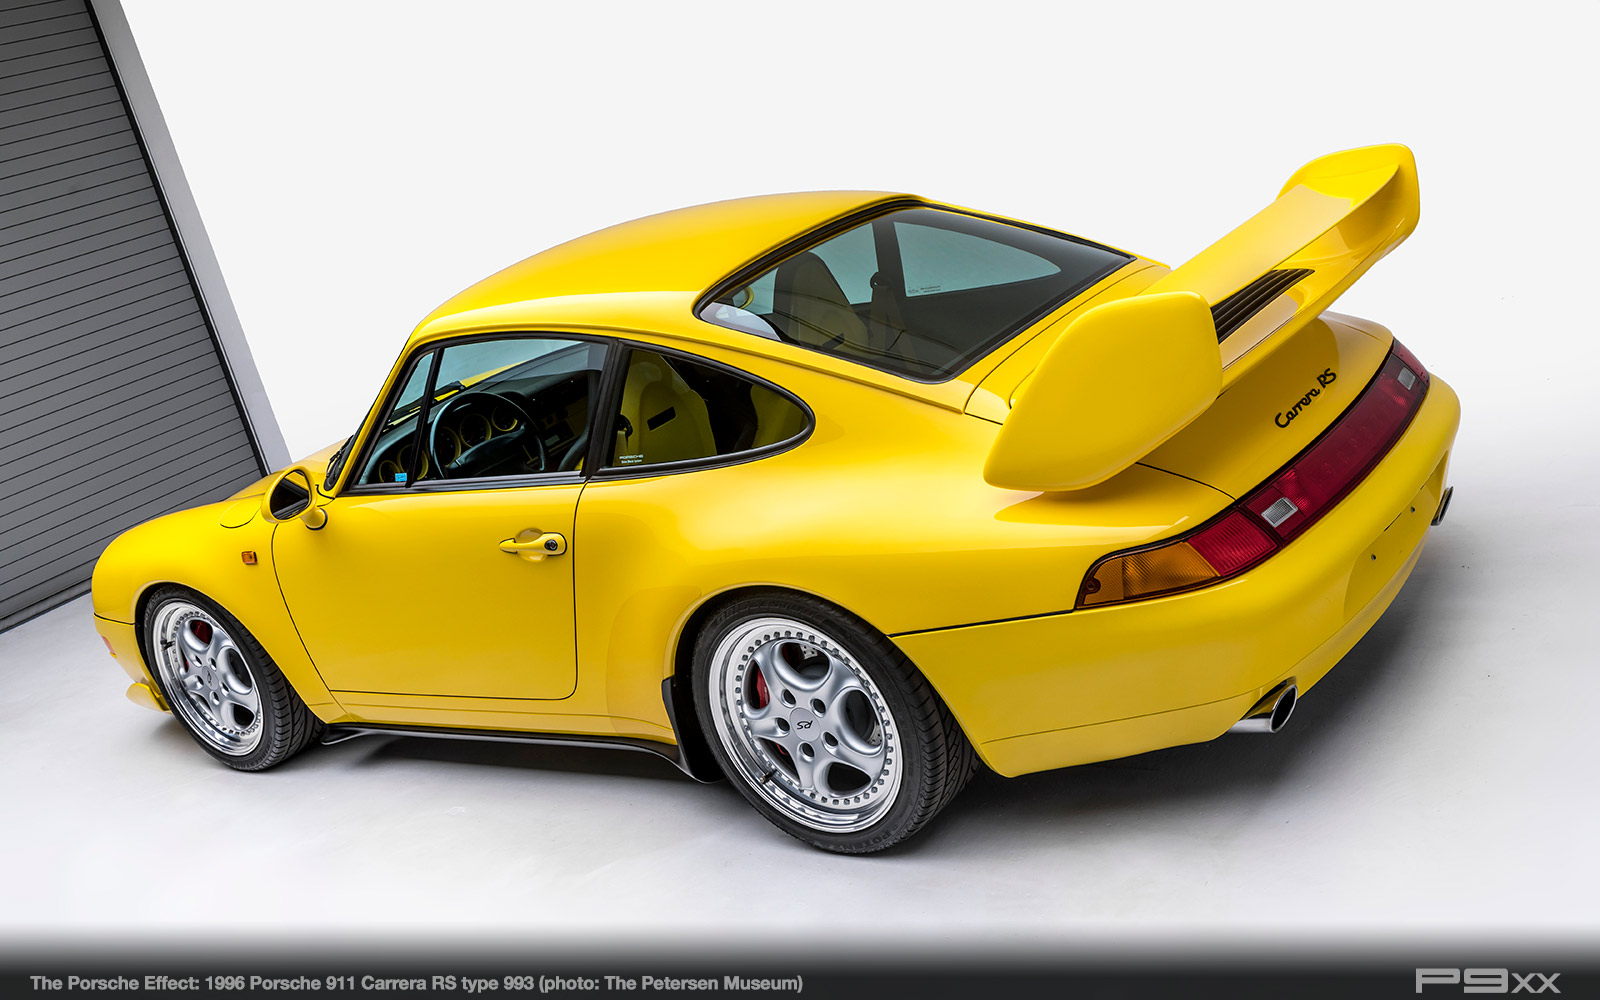 1996-911-Carrera-RS-993-Petersen-Automotive-Museum-The-Porsche-Effect289